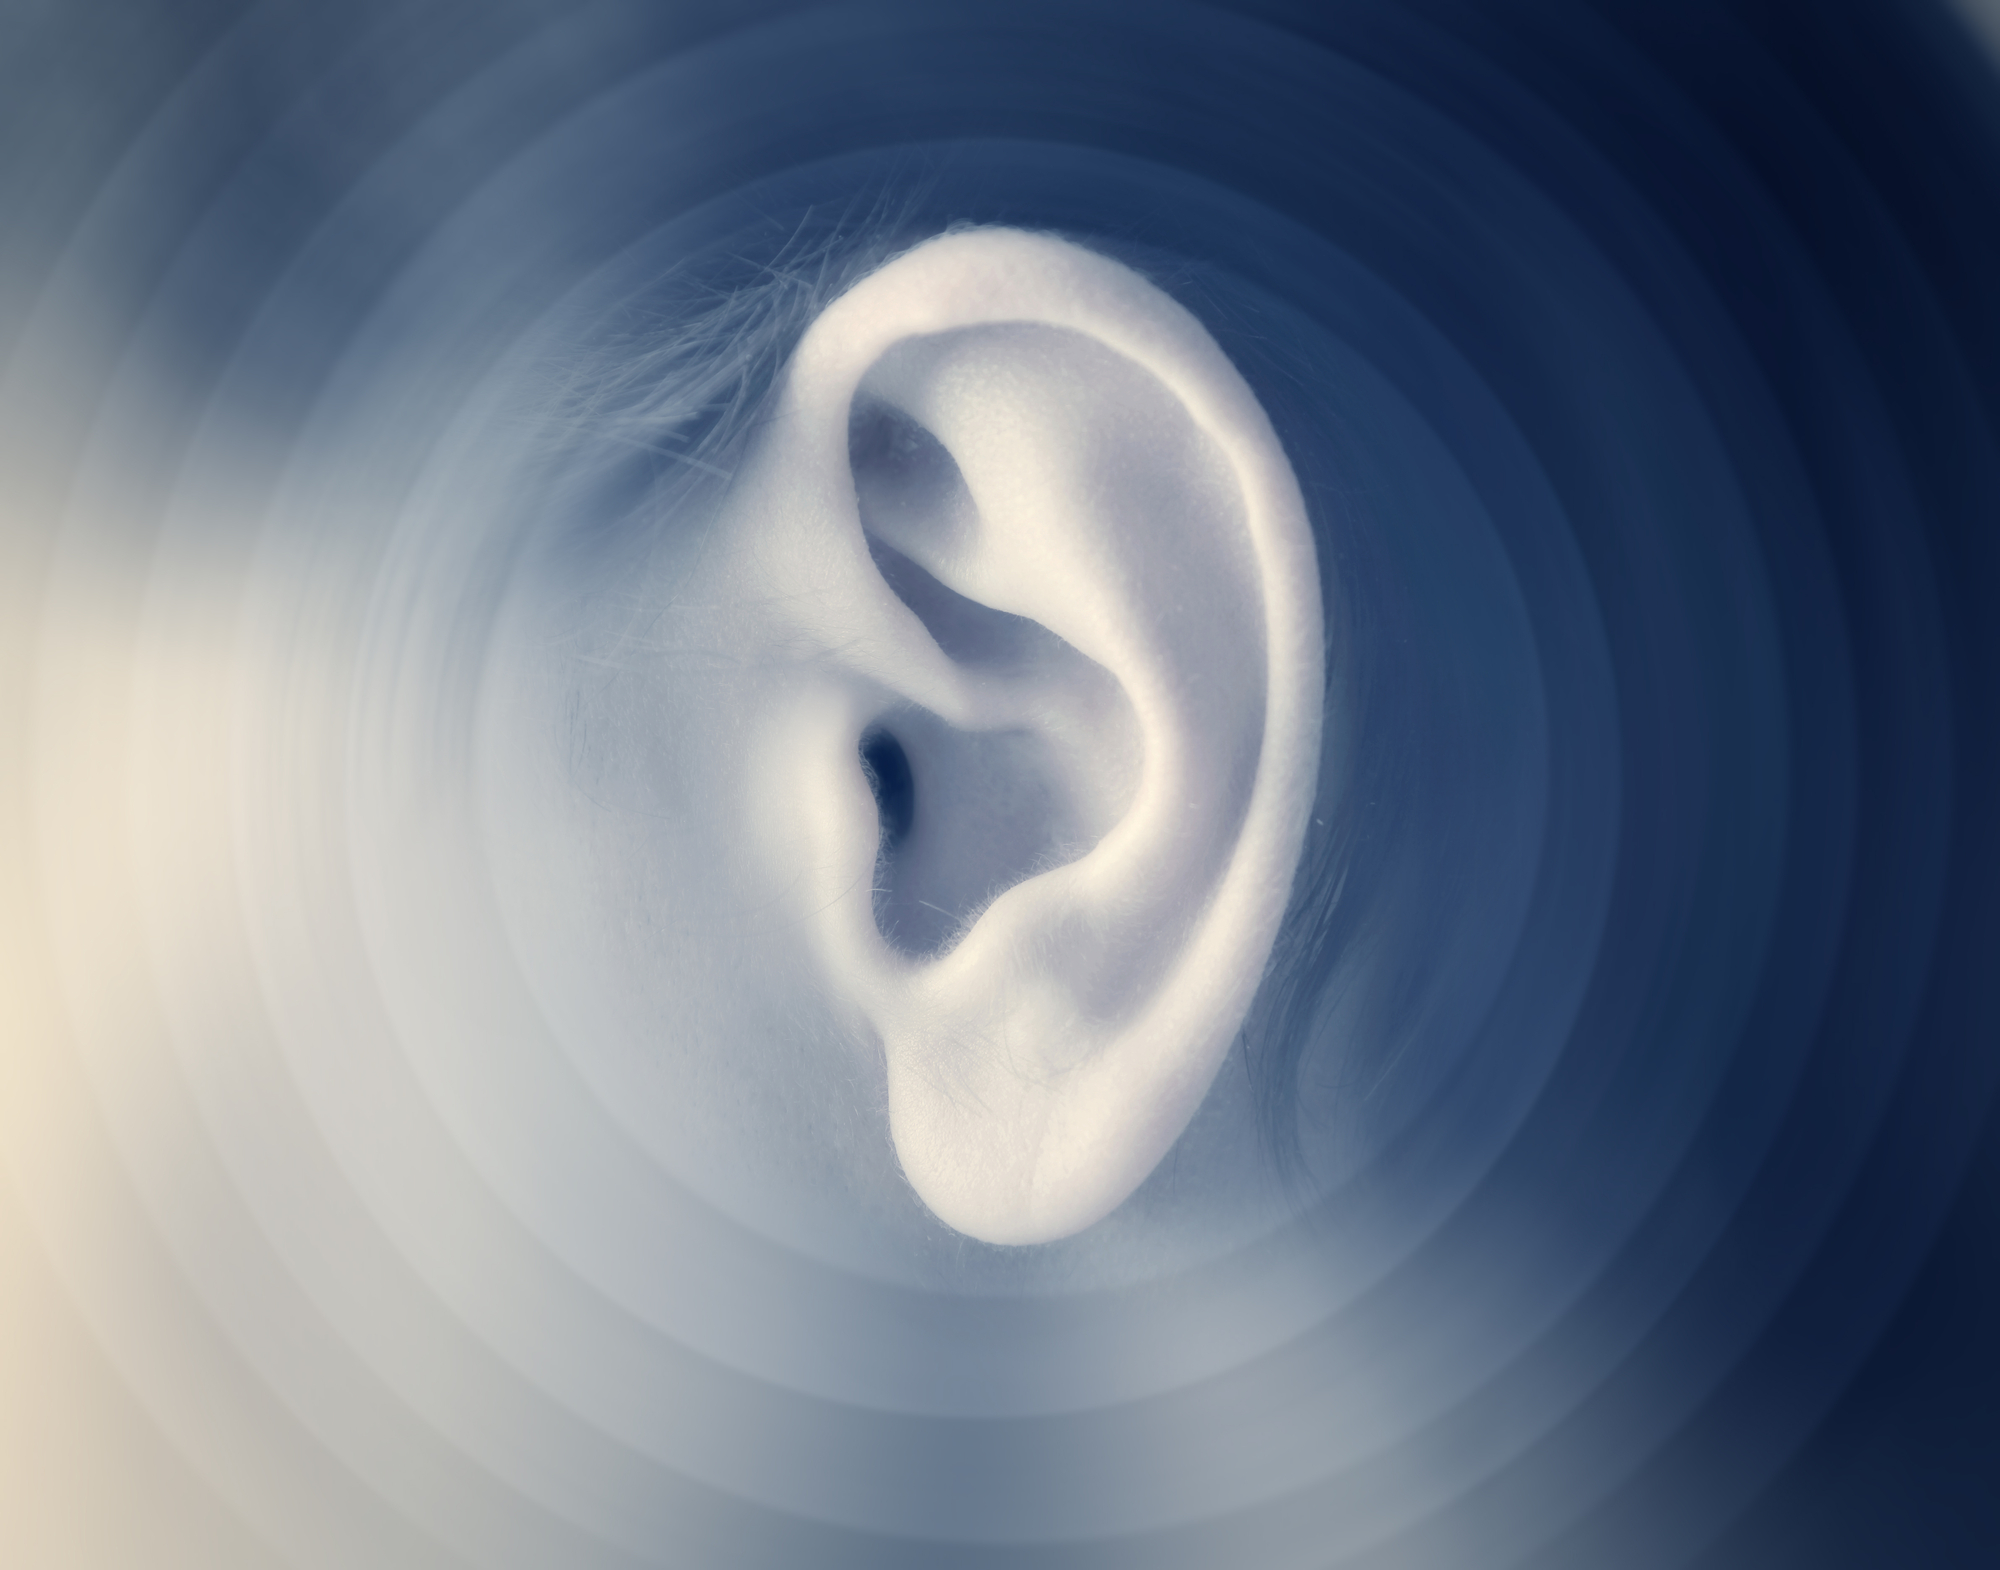 Scientists have made a discovery could one day lead to regenerative treatments for hearing loss